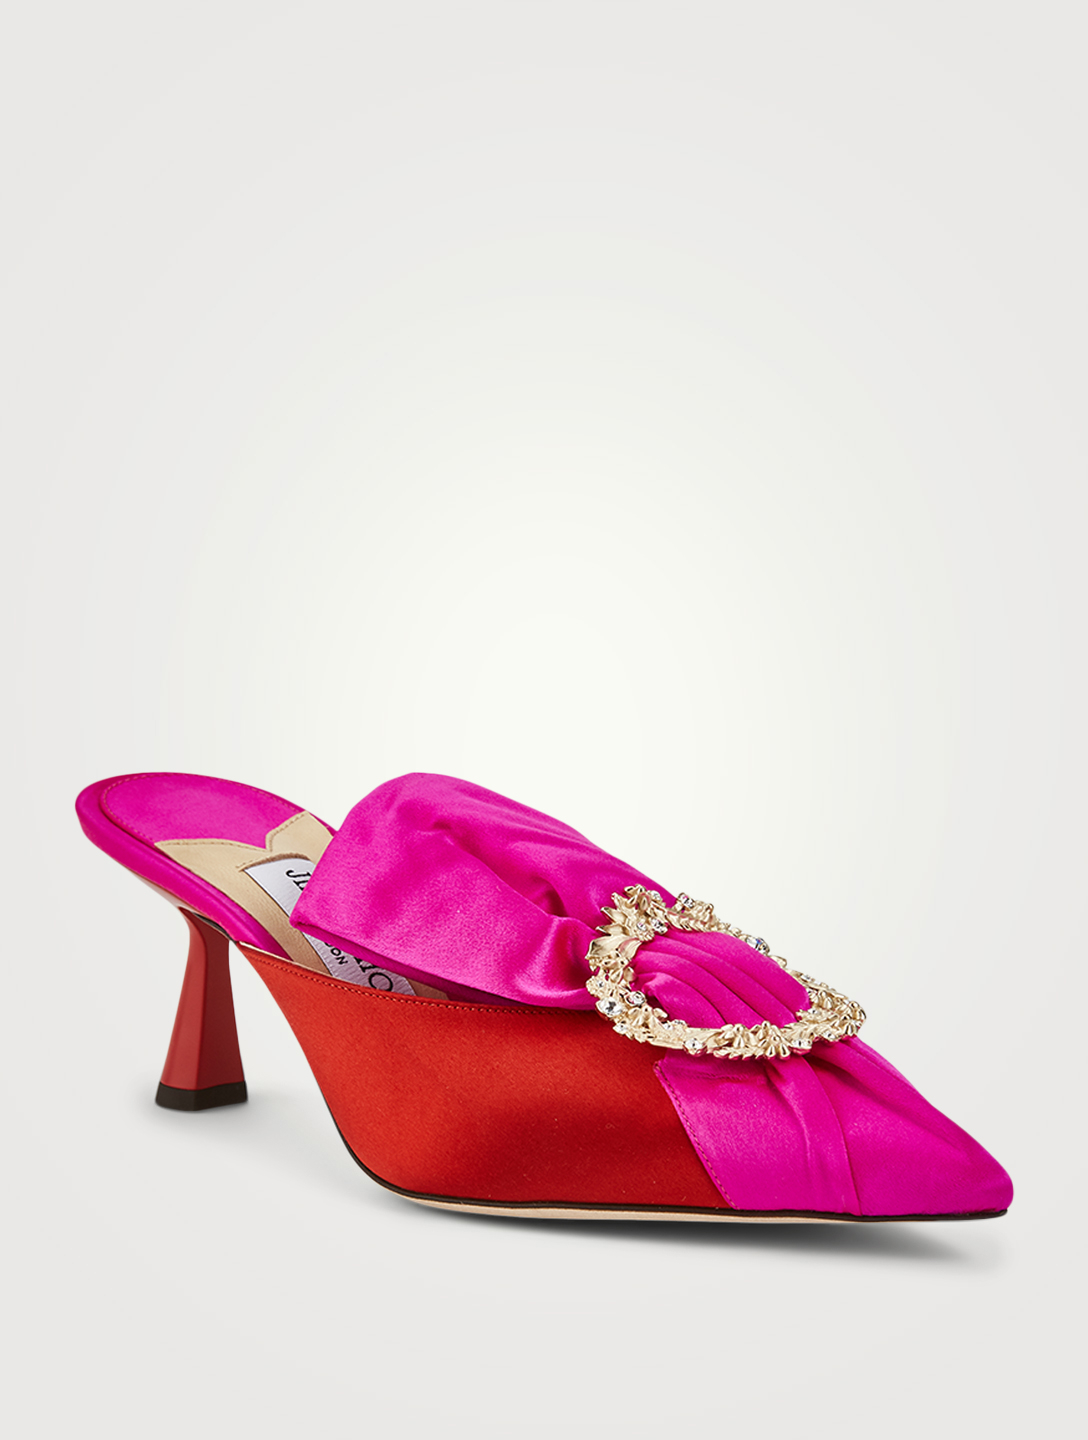 JIMMY CHOO Lulla 65 Satin Mules With Crystal Buckle Women's Pink